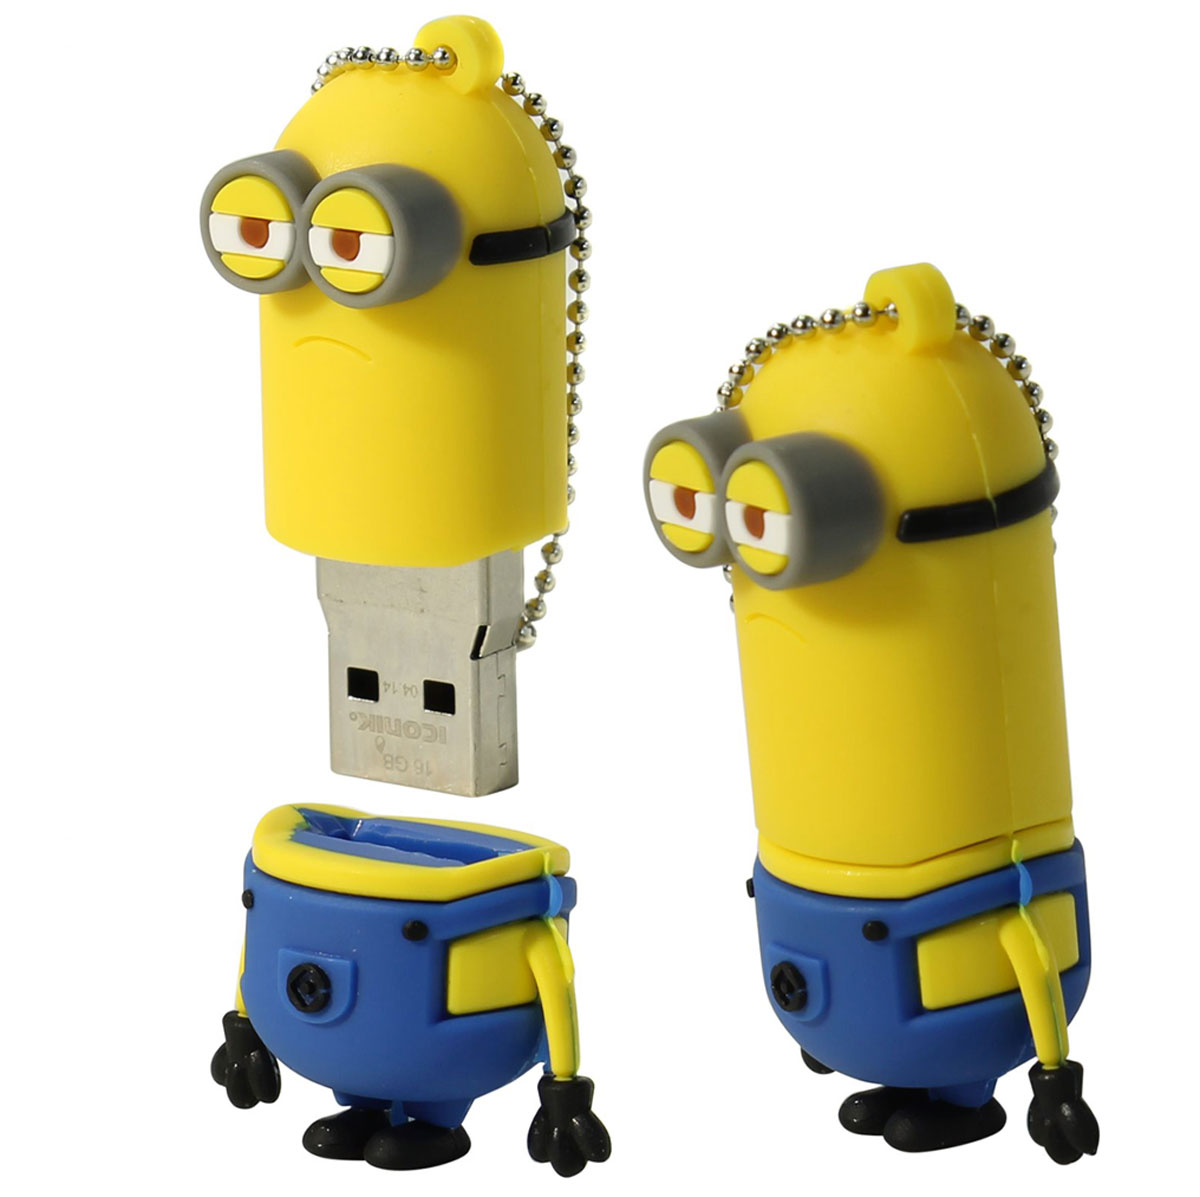 Porn minion photo sex picture